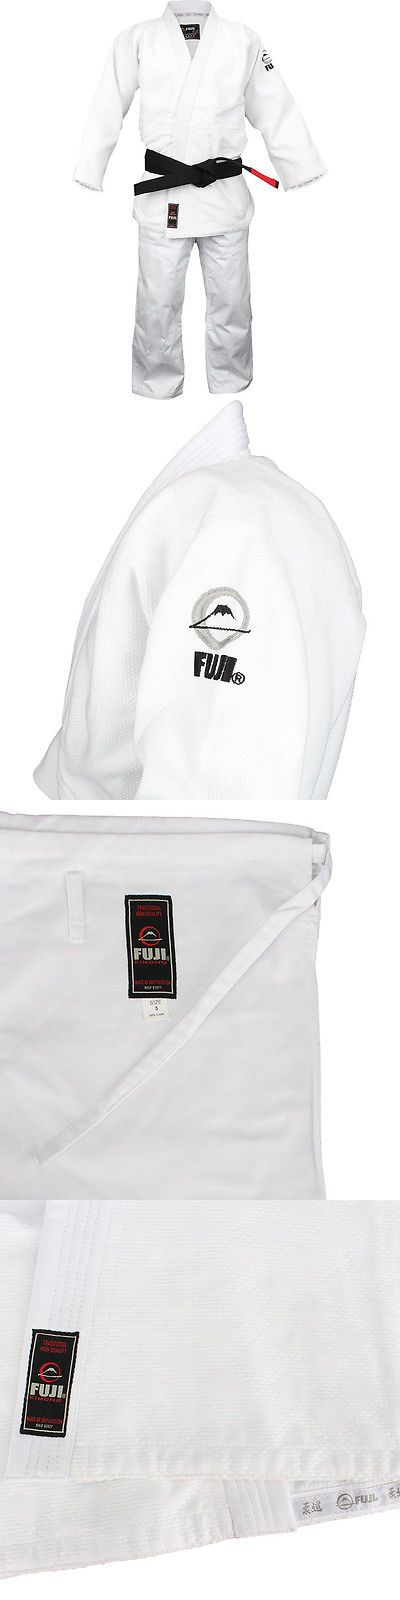 Uniforms and Gis 179774: Fuji Double Weave Judo Gi -> BUY IT NOW ONLY: $78.99 on eBay!